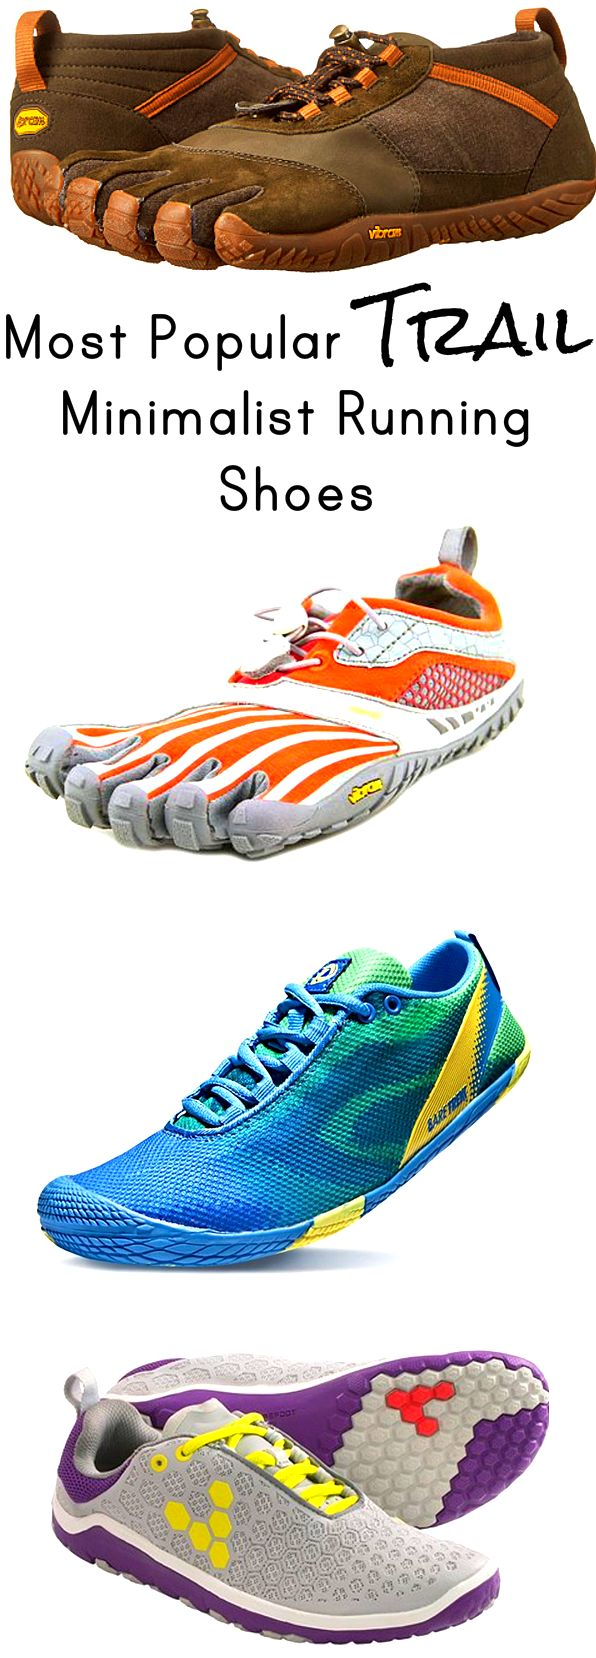 Trail Running Shoe Guide for Forefoot Runners